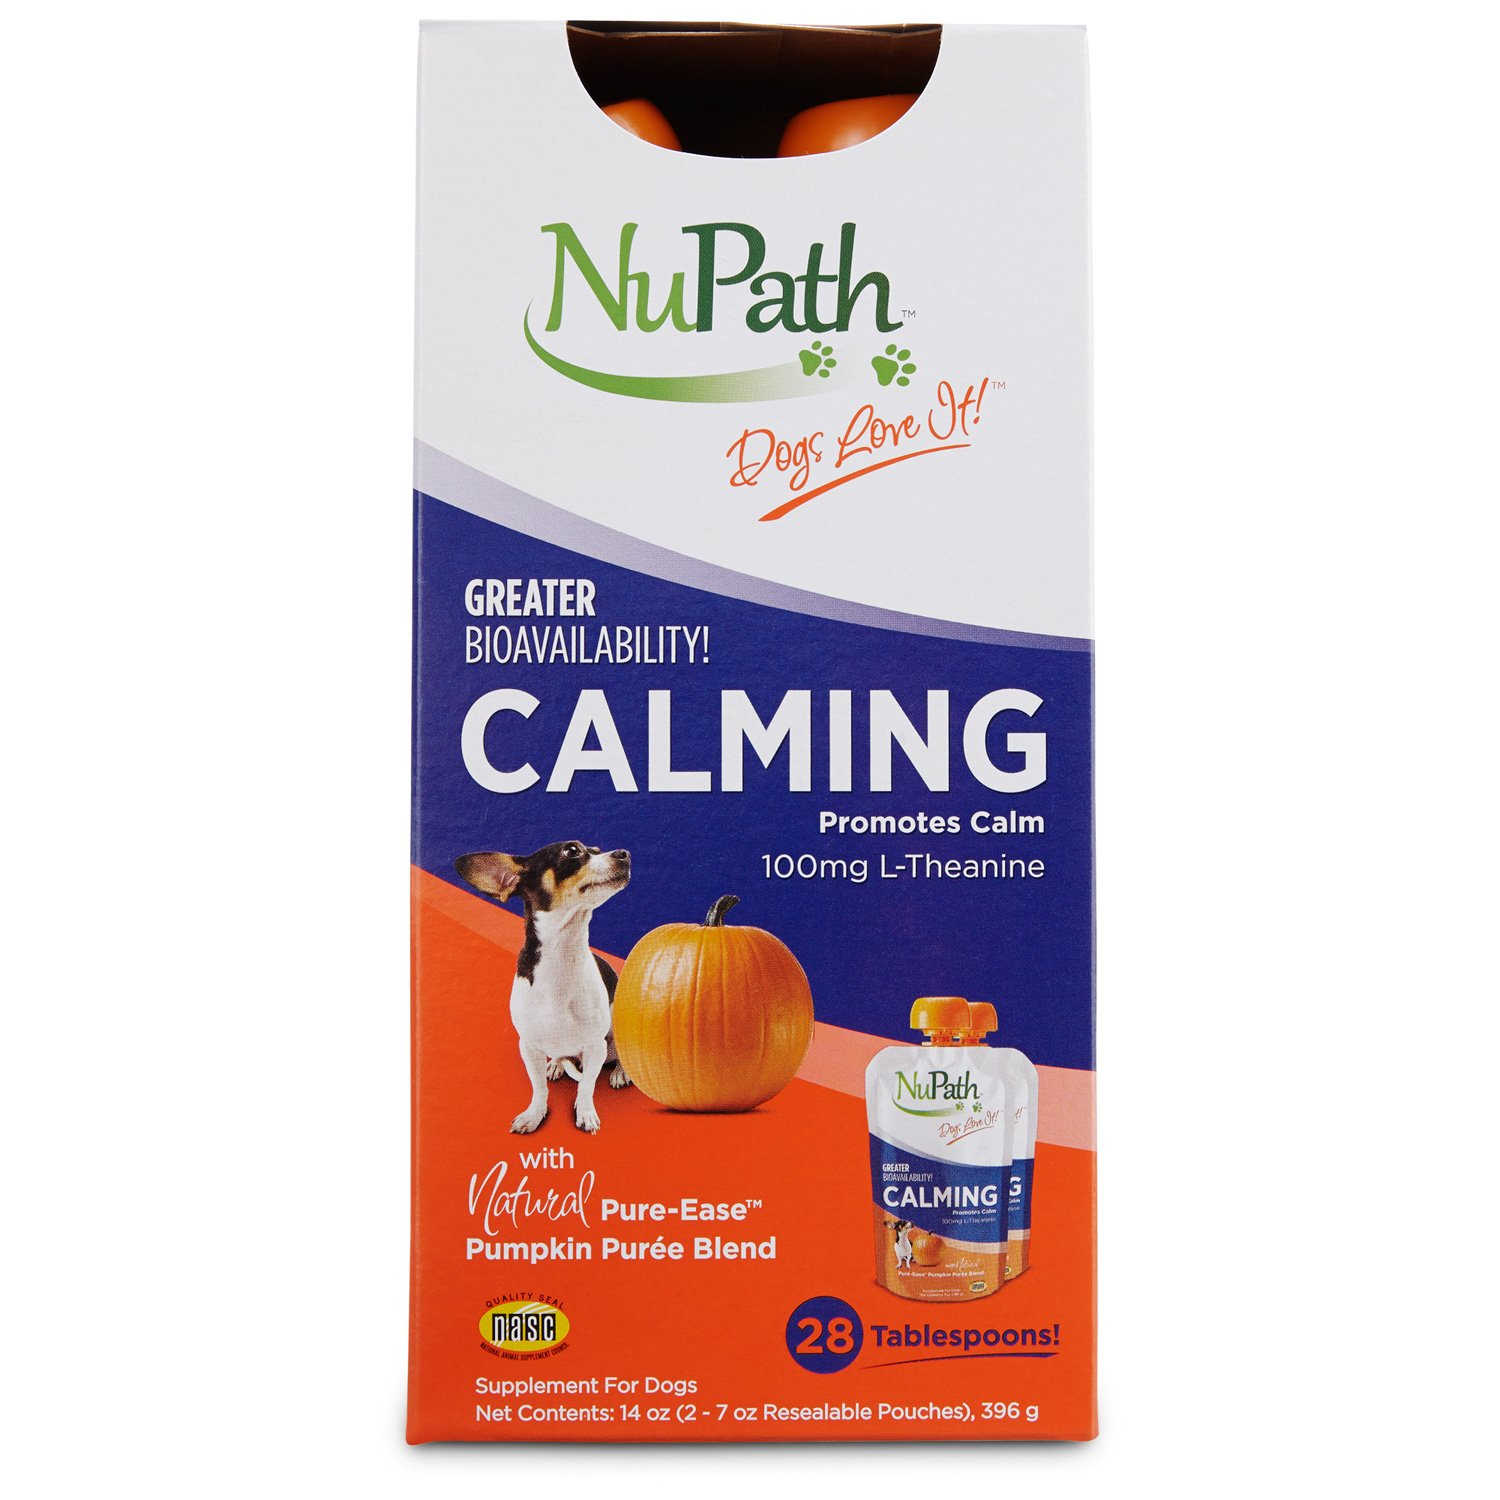 NuPath Calming Pumpkin Puree Dog Supplement